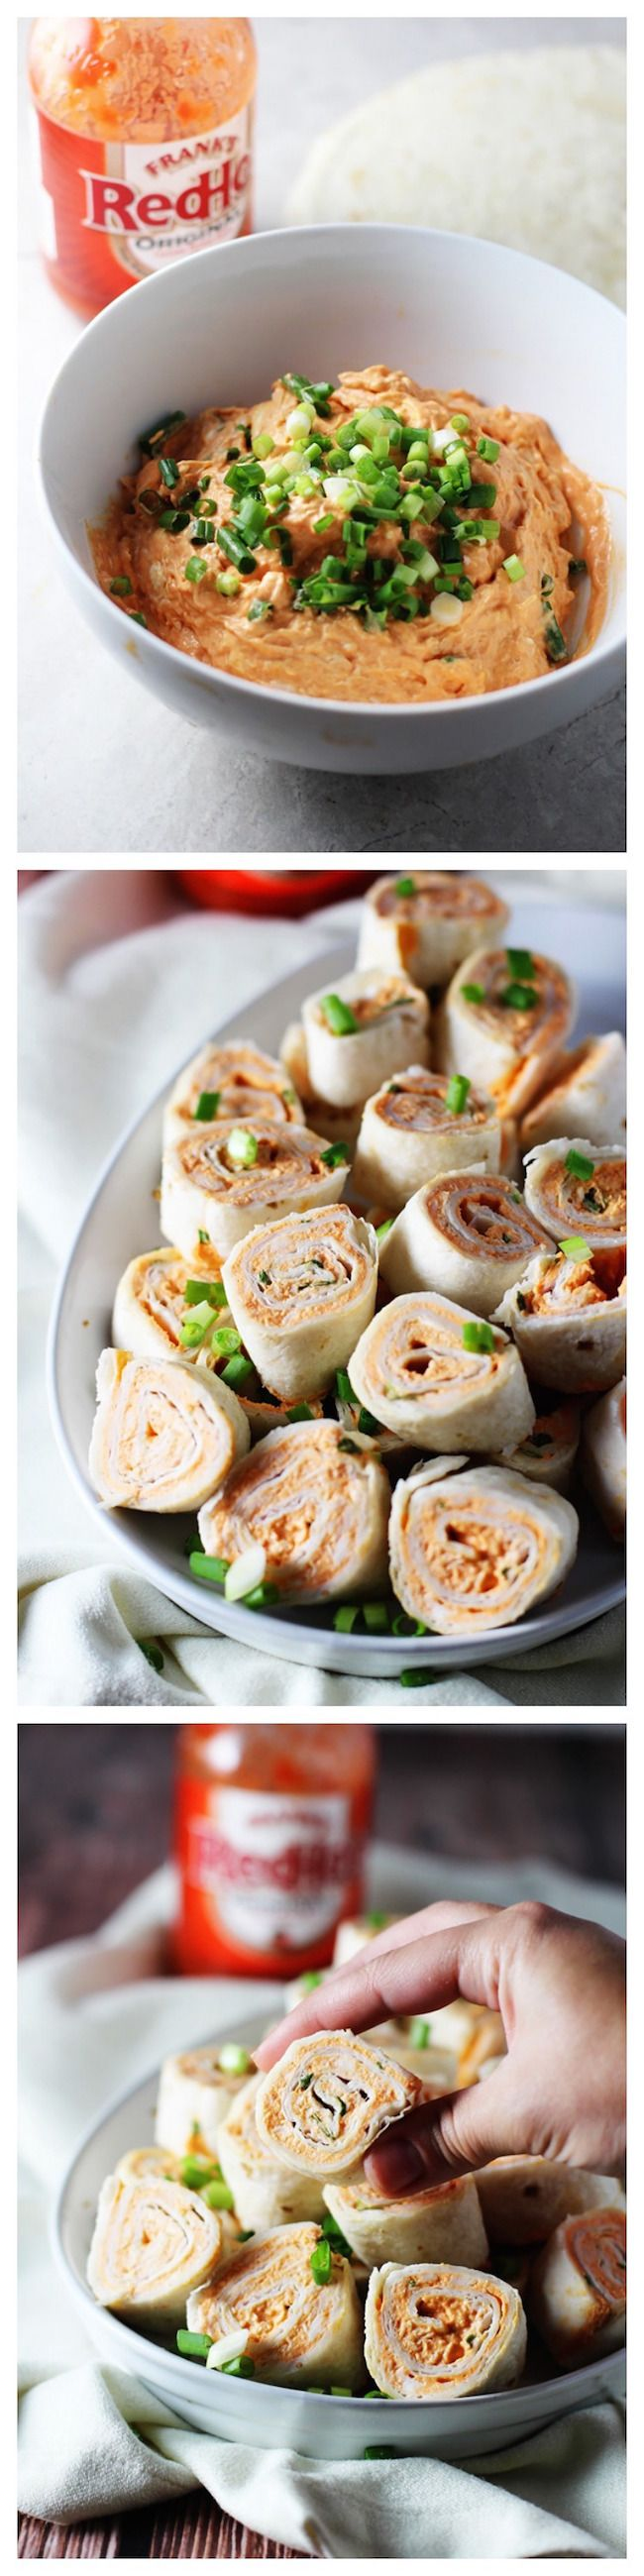 Whether you are looking for some tasty appetizer ideas, or you are a family looking for a quick meal solution, these 11 Roll Up Recipes are all you need!